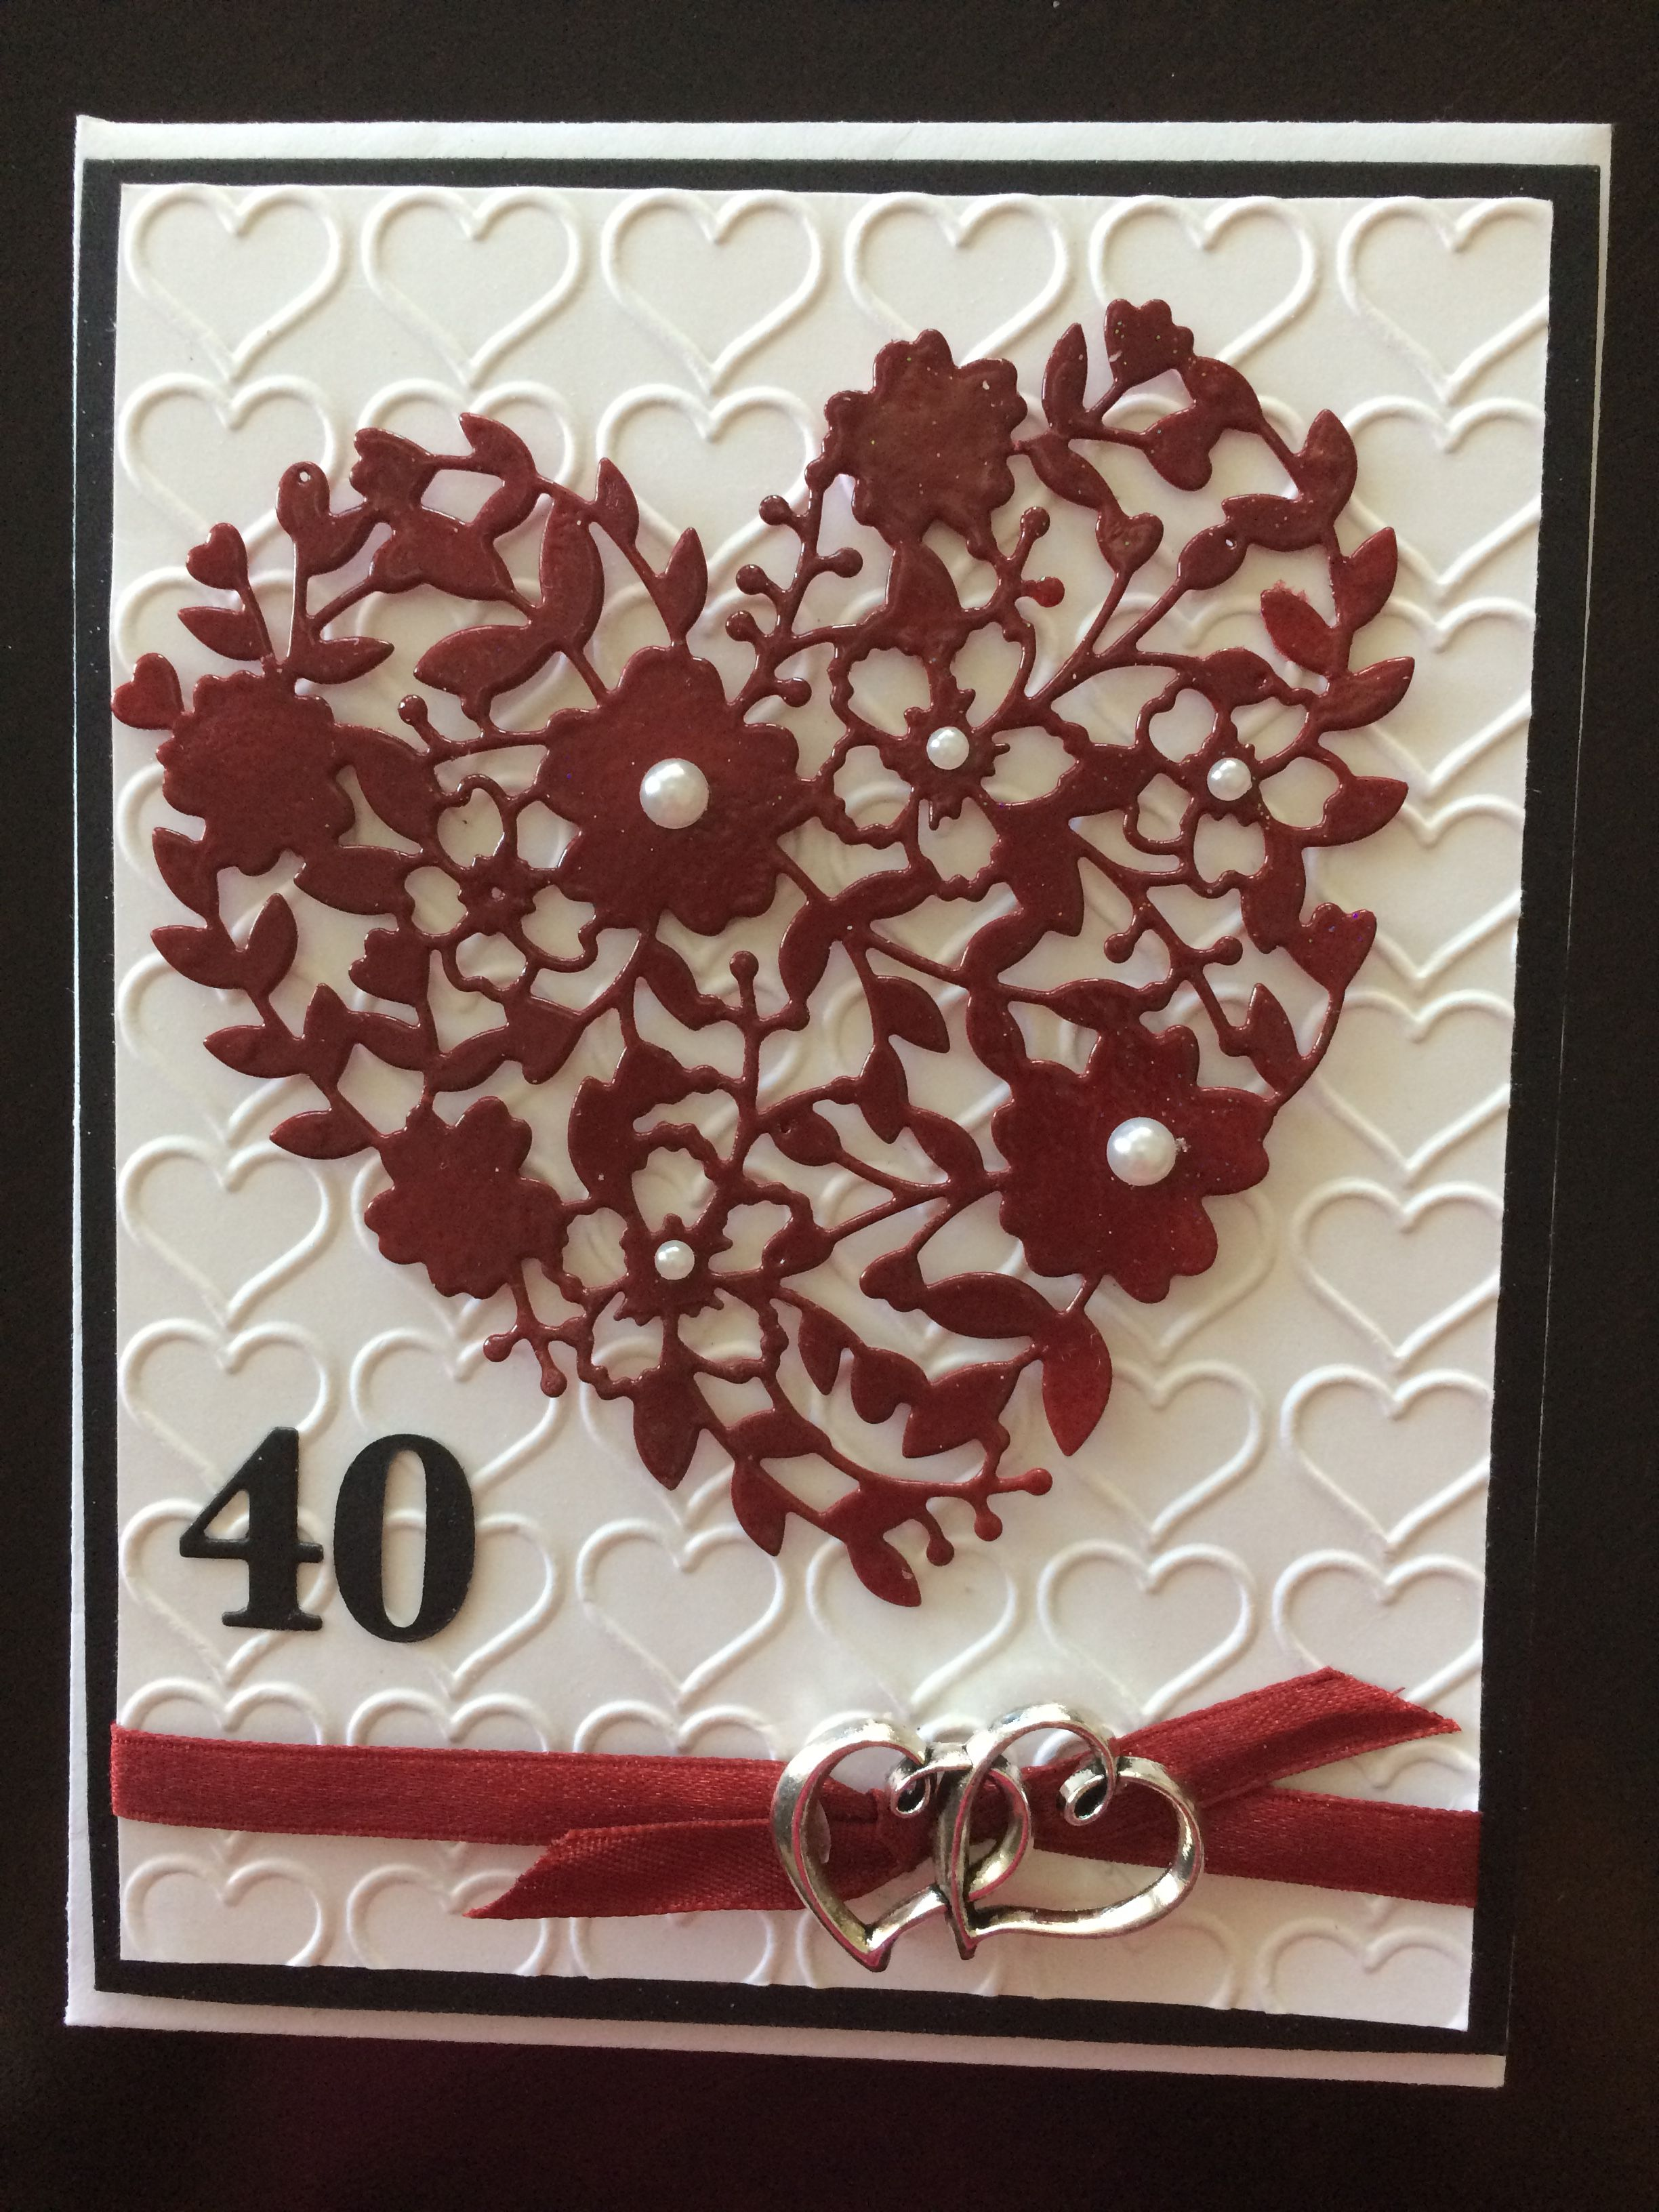 What Gift For 40th Wedding Anniversary: Bloomin' Heart Thinlit For 40th Anniversary, Ruby